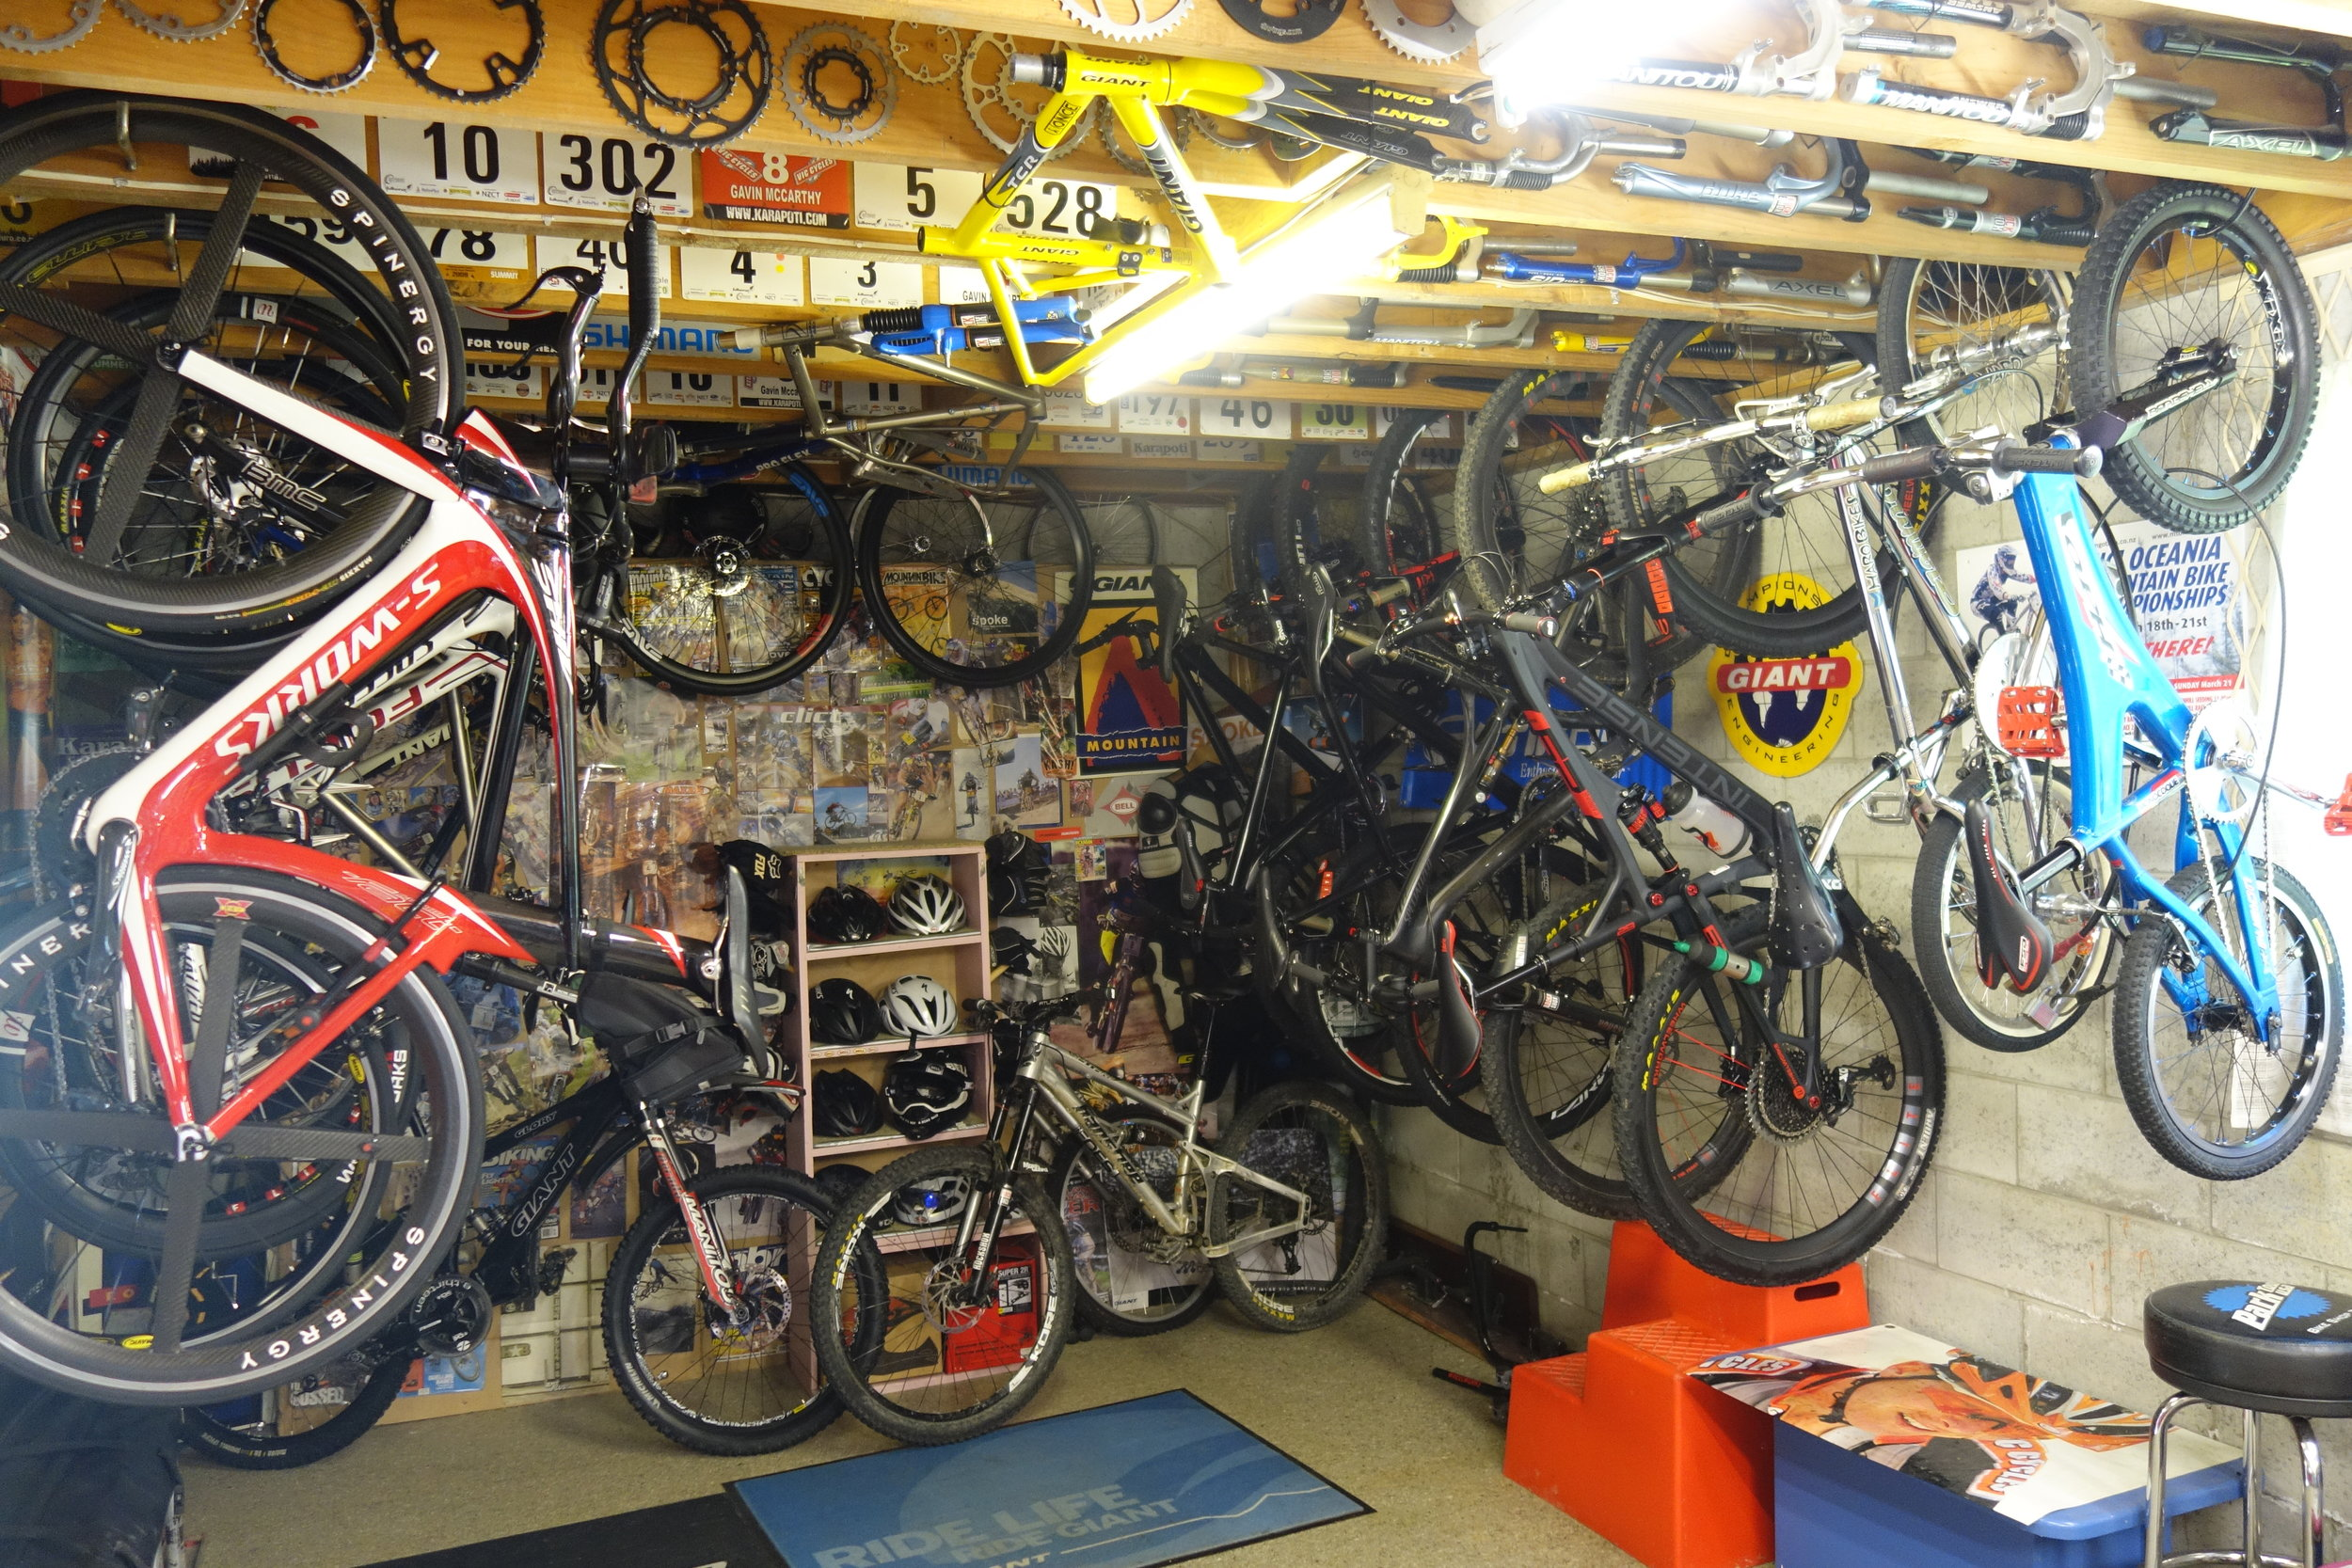 Gavs personal bikes. Show this pic to your nagging wife/husband. Tell them to thank their lucky stars.